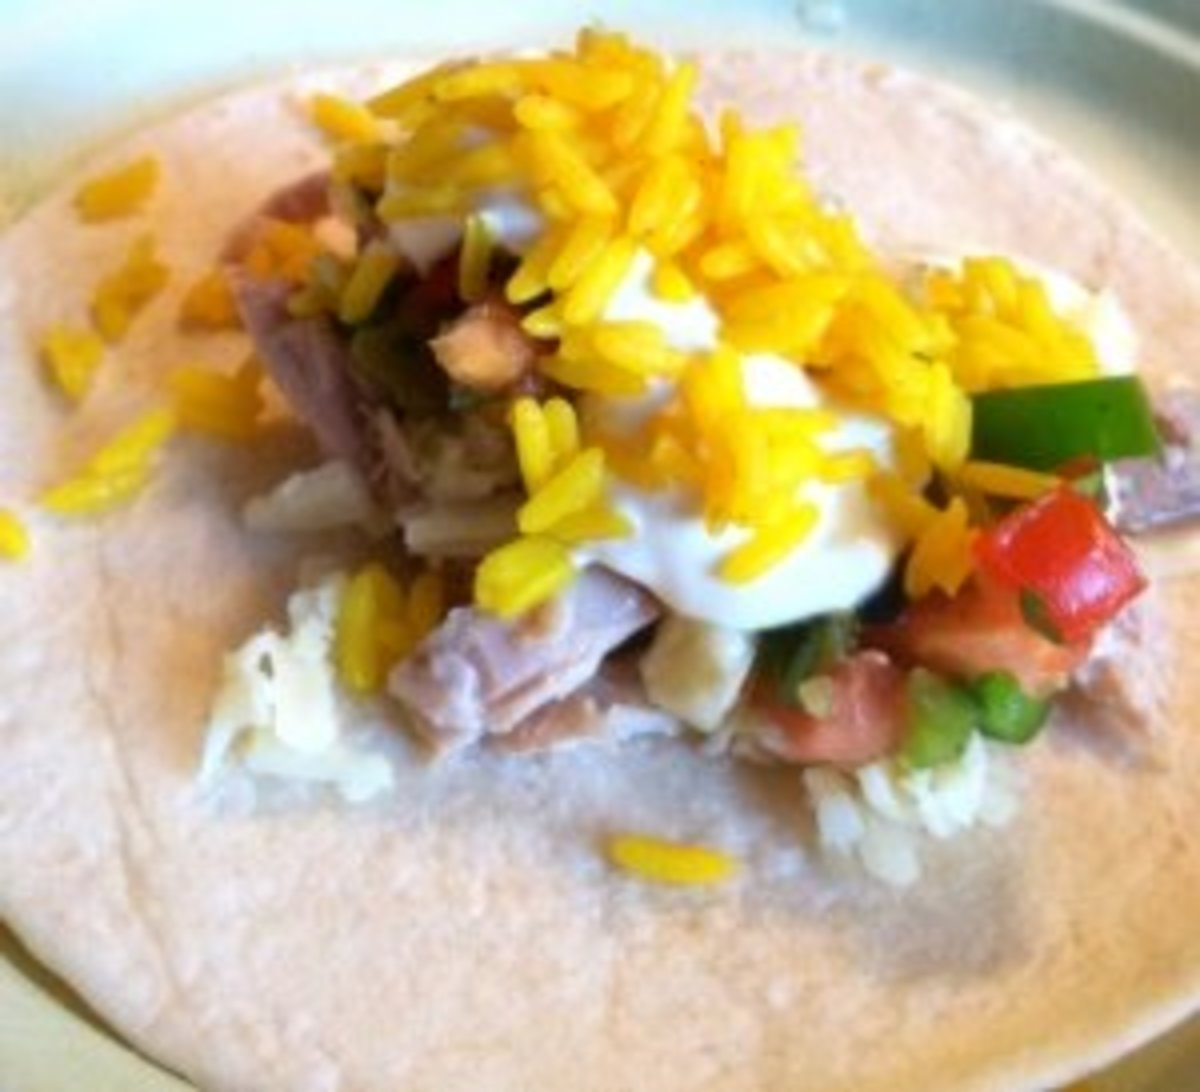 How to Make Tacos for a Taco Bar Party